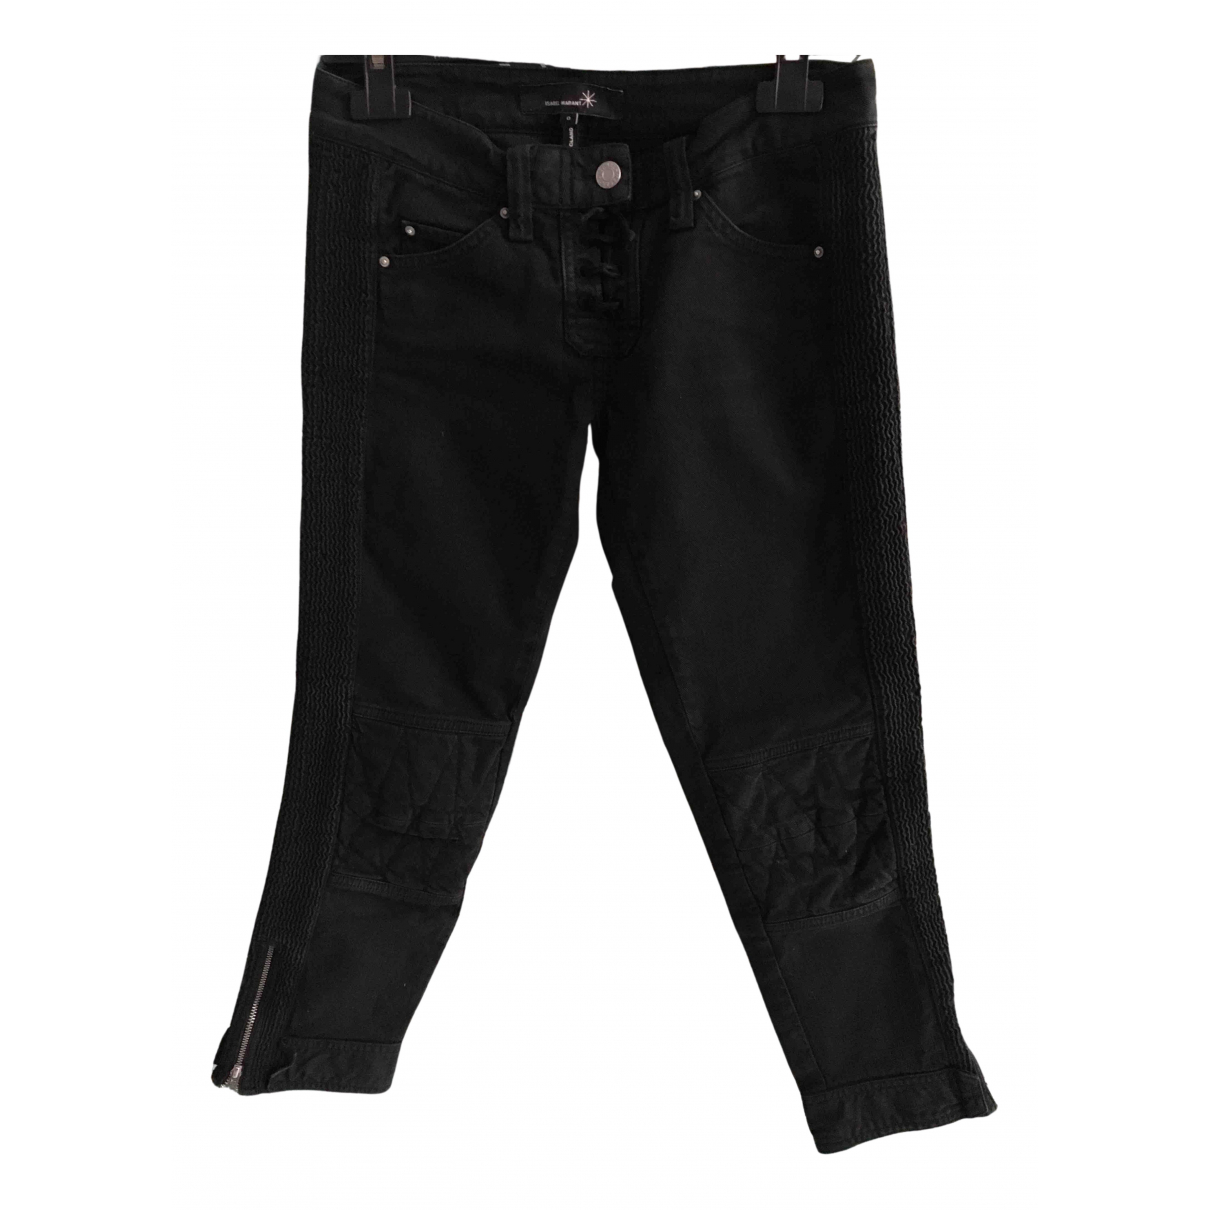 Isabel Marant N Black Cotton Trousers for Women 34 FR